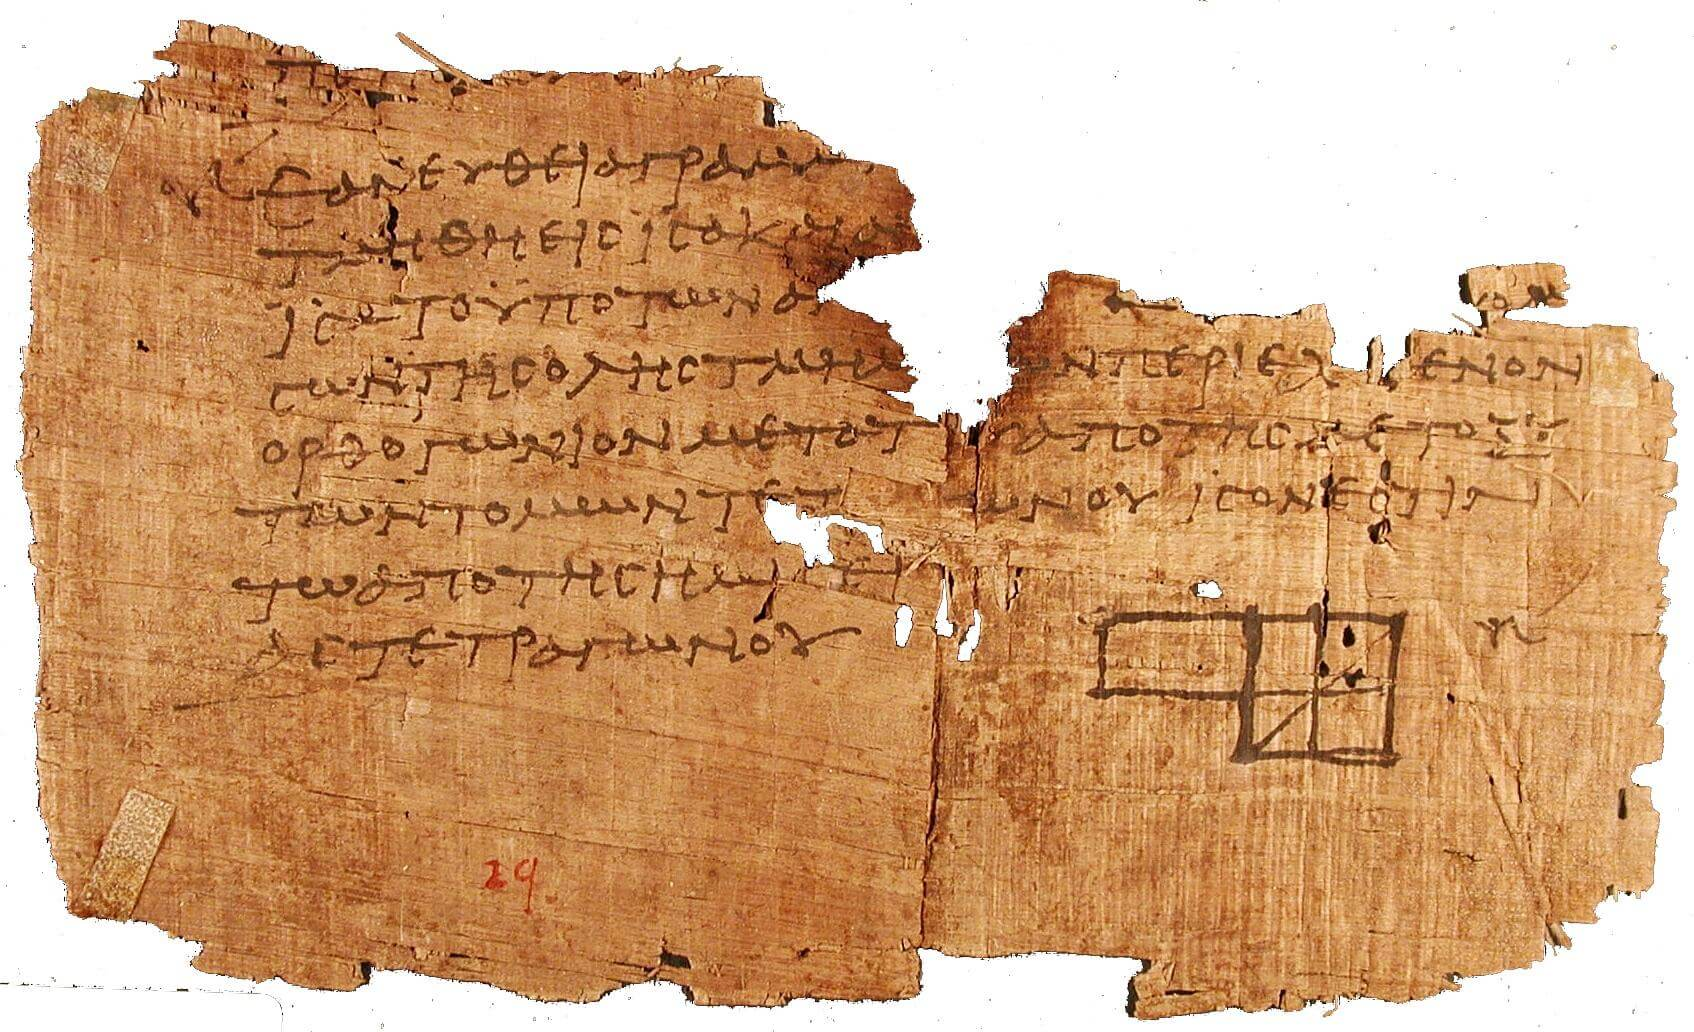 Did researchers solve ancient math problem coming from ancient Sanskrit scrolls?